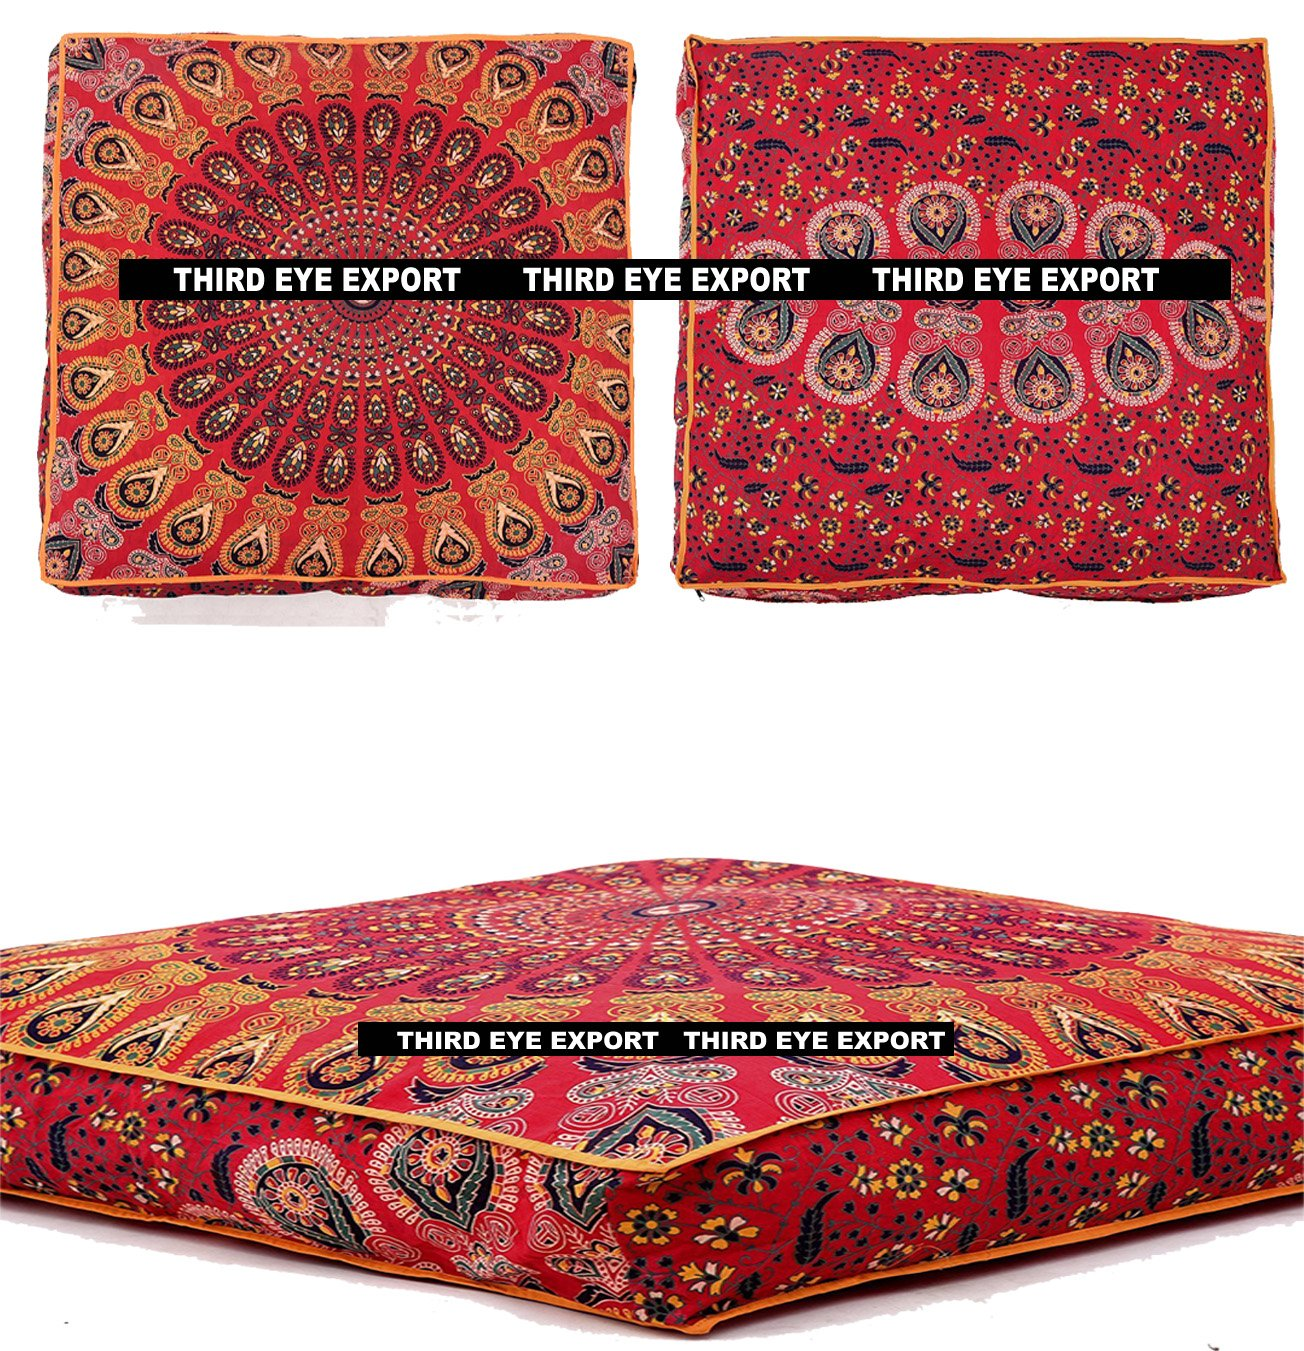 Third Eye Export - Indian Mandala Floor Pillow Square Ottoman Pouf Daybed Oversized Cushion Cover Cotton Seating Ottoman Poufs Dog/Pets Bed (Red)